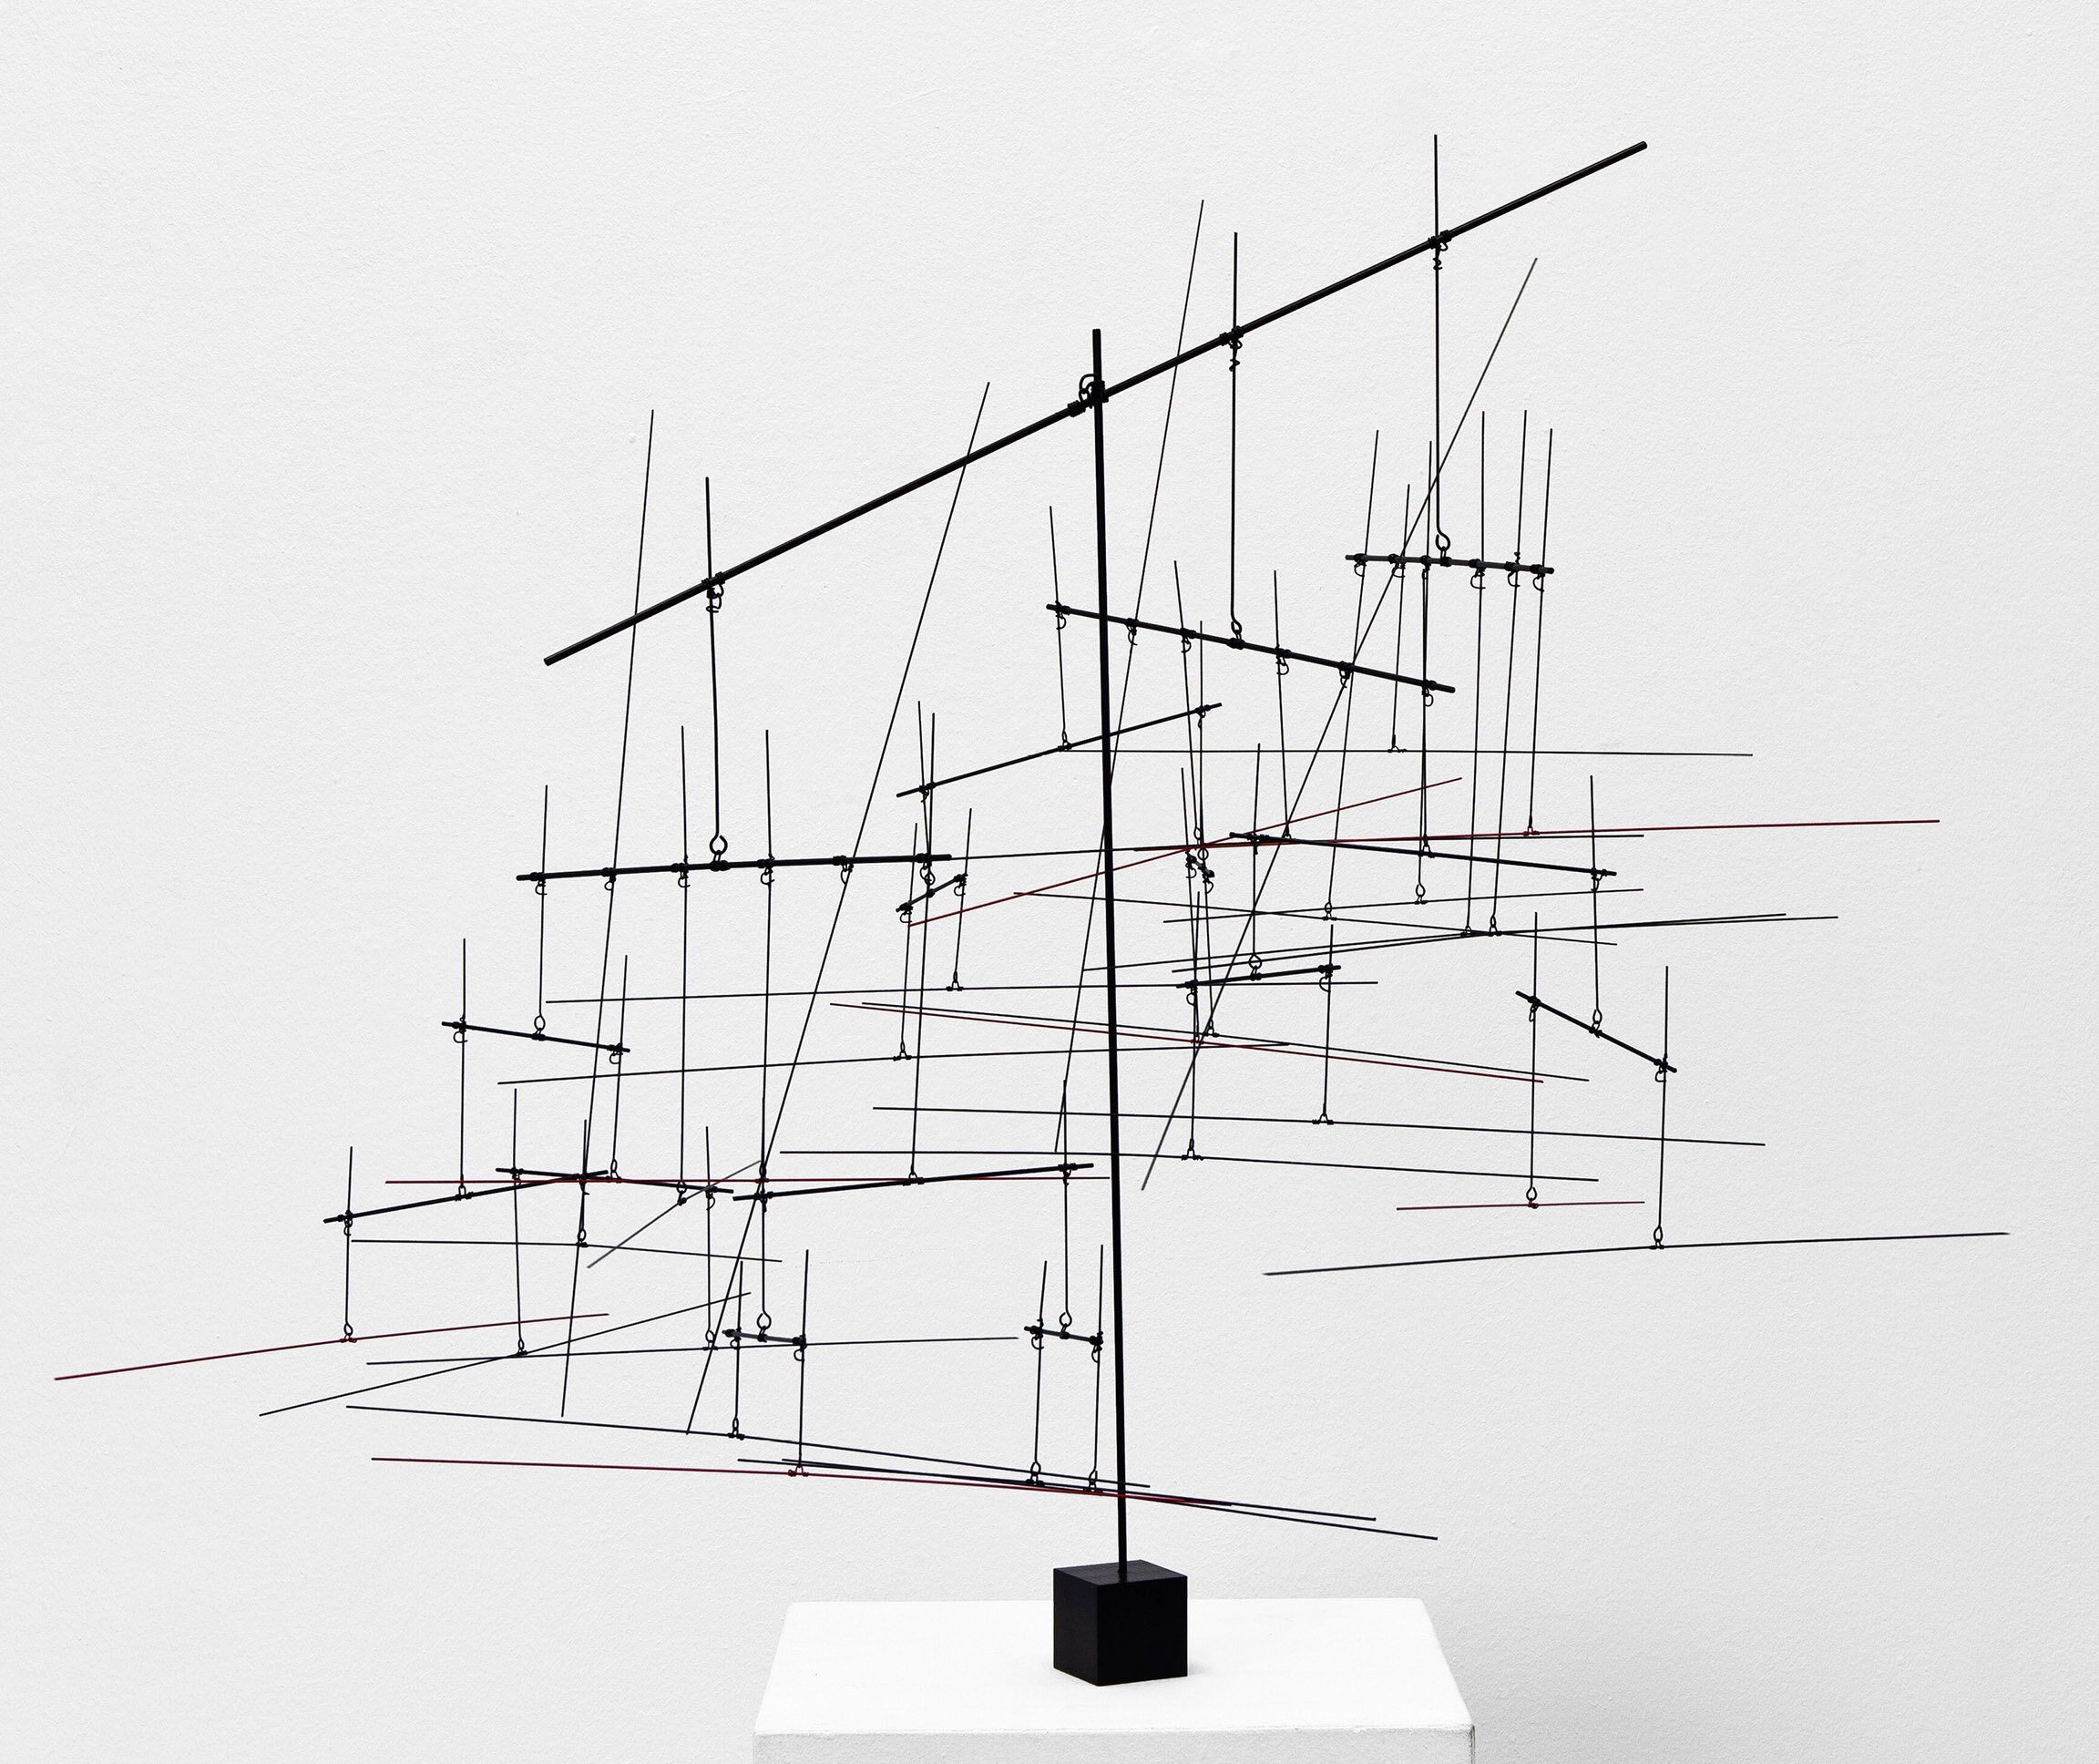 System 20:14 , 2013  stainless steel with powder coating 31 1/2 x 43 1/4 x 21 5/8 inches; 80 x 110 x 55 centimeters